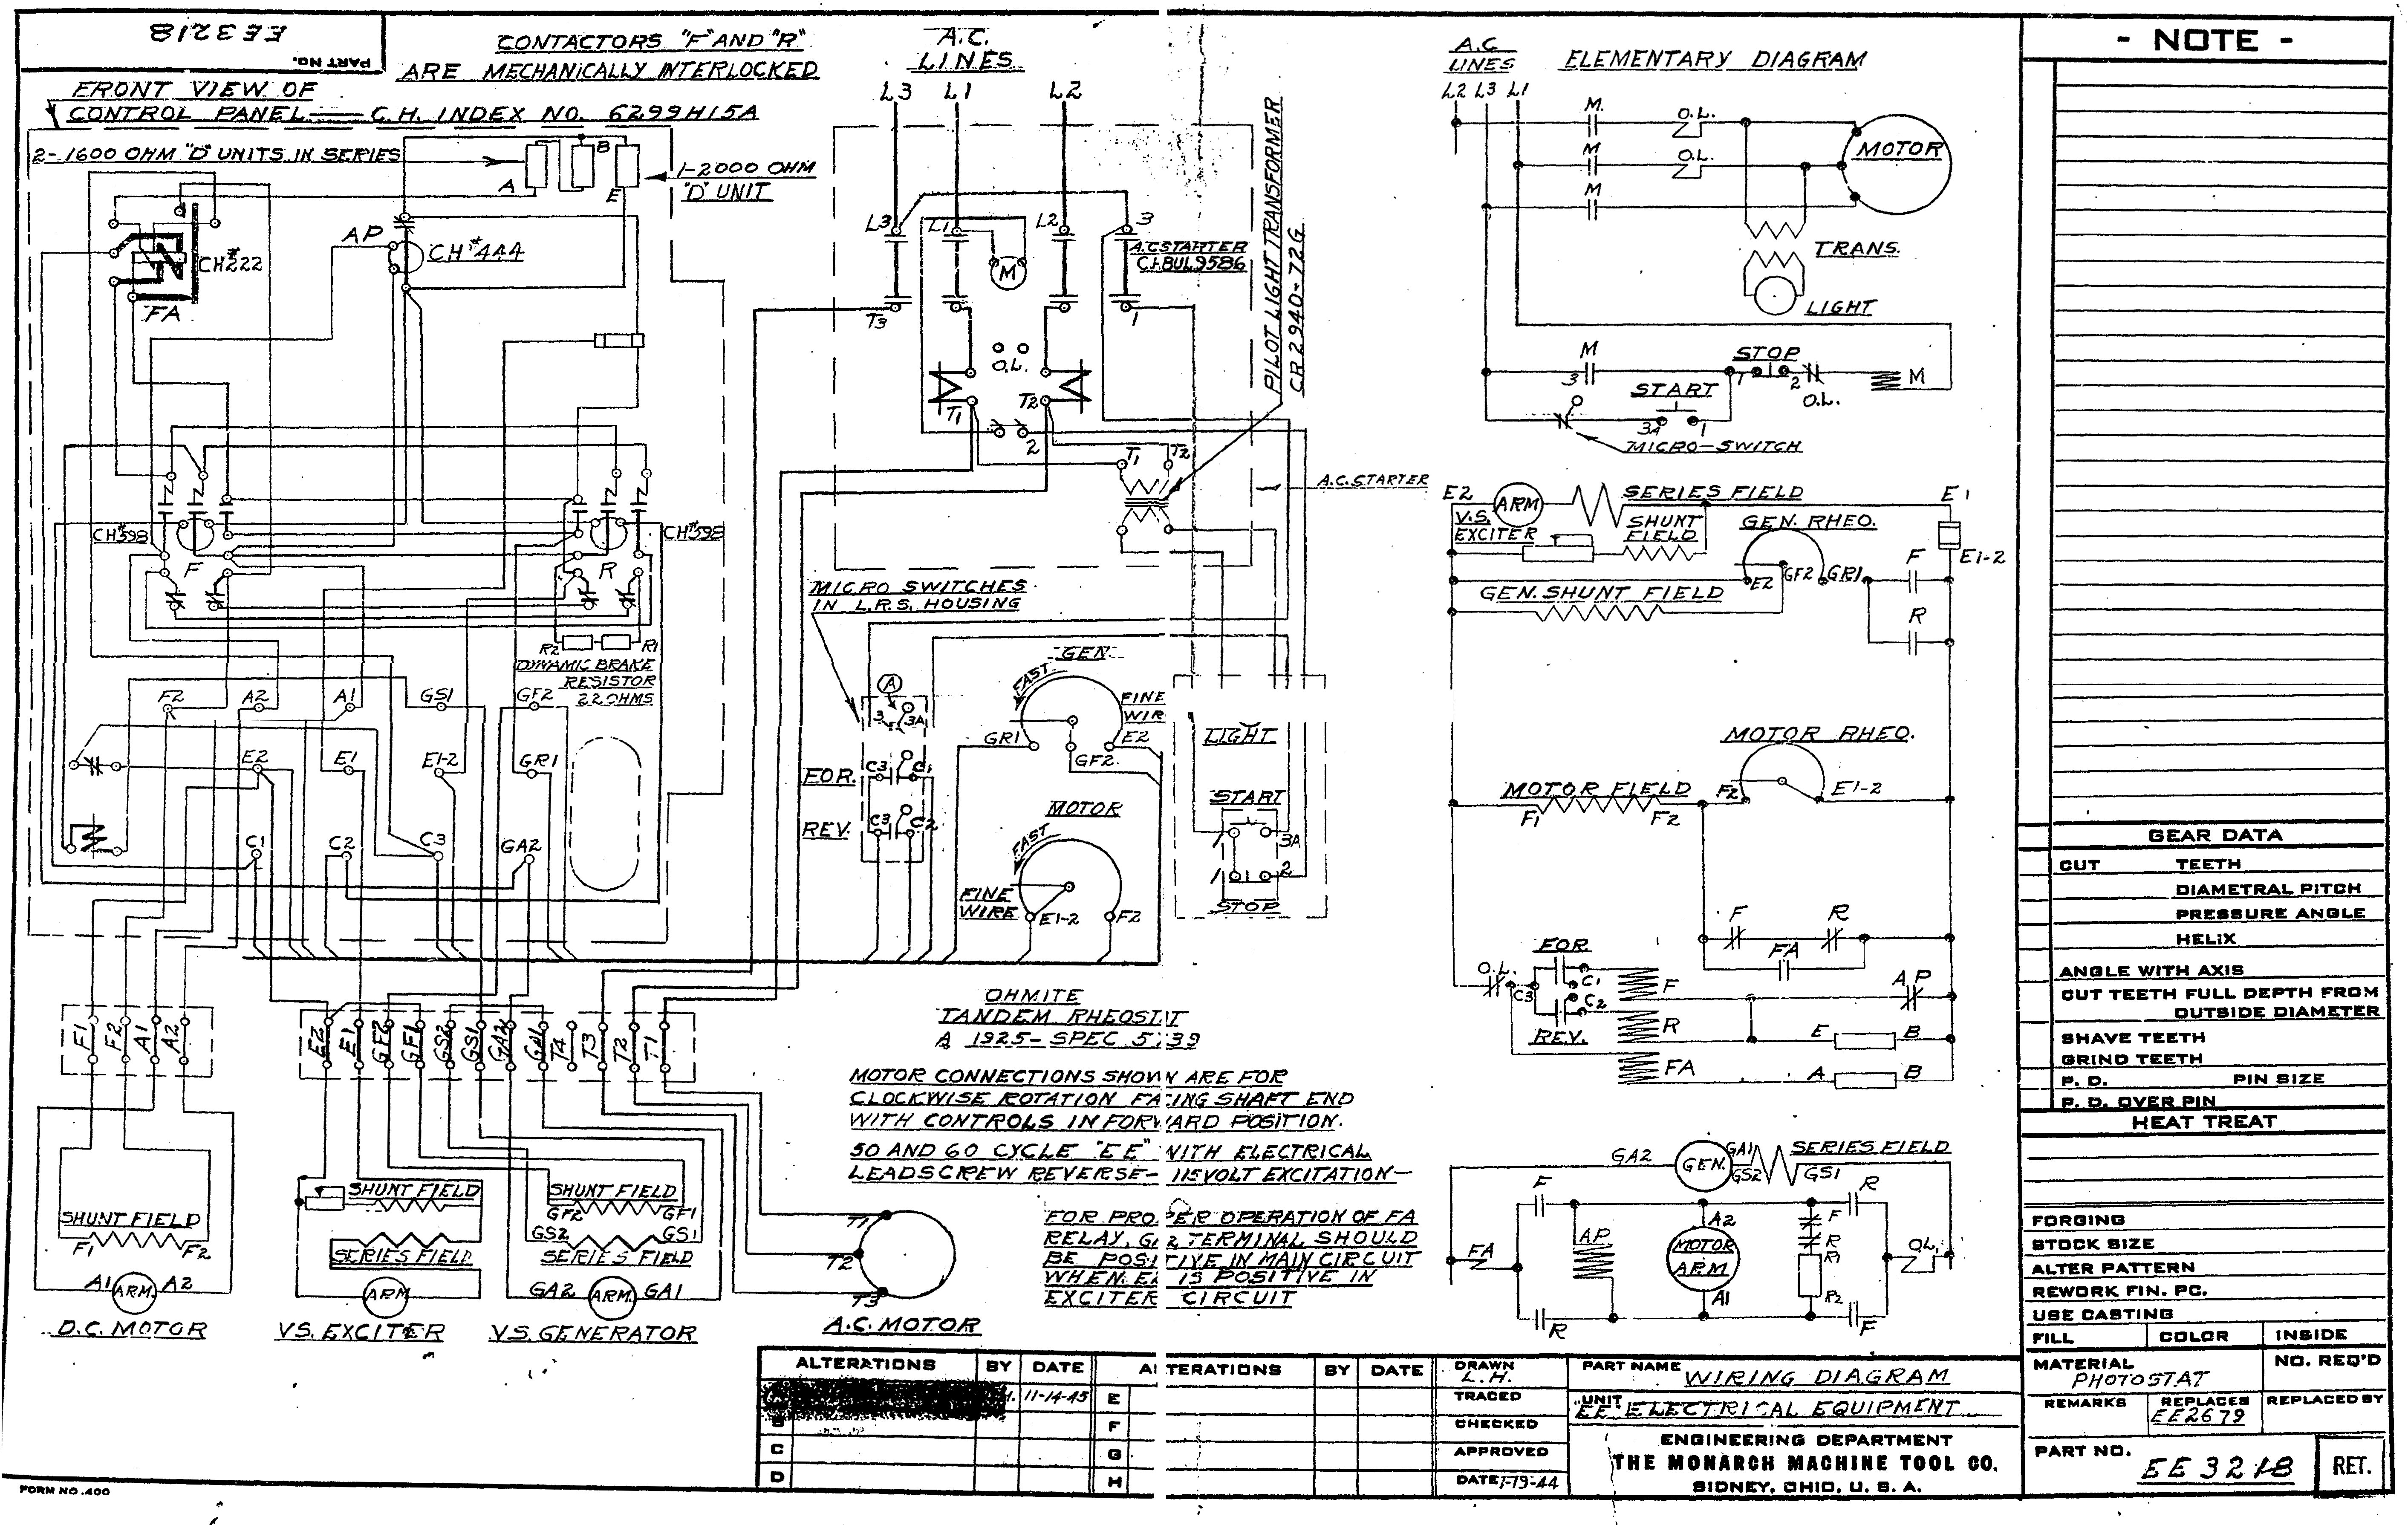 Lathe Motor Wiring Diagram : Monarch lathe wiring diagram images